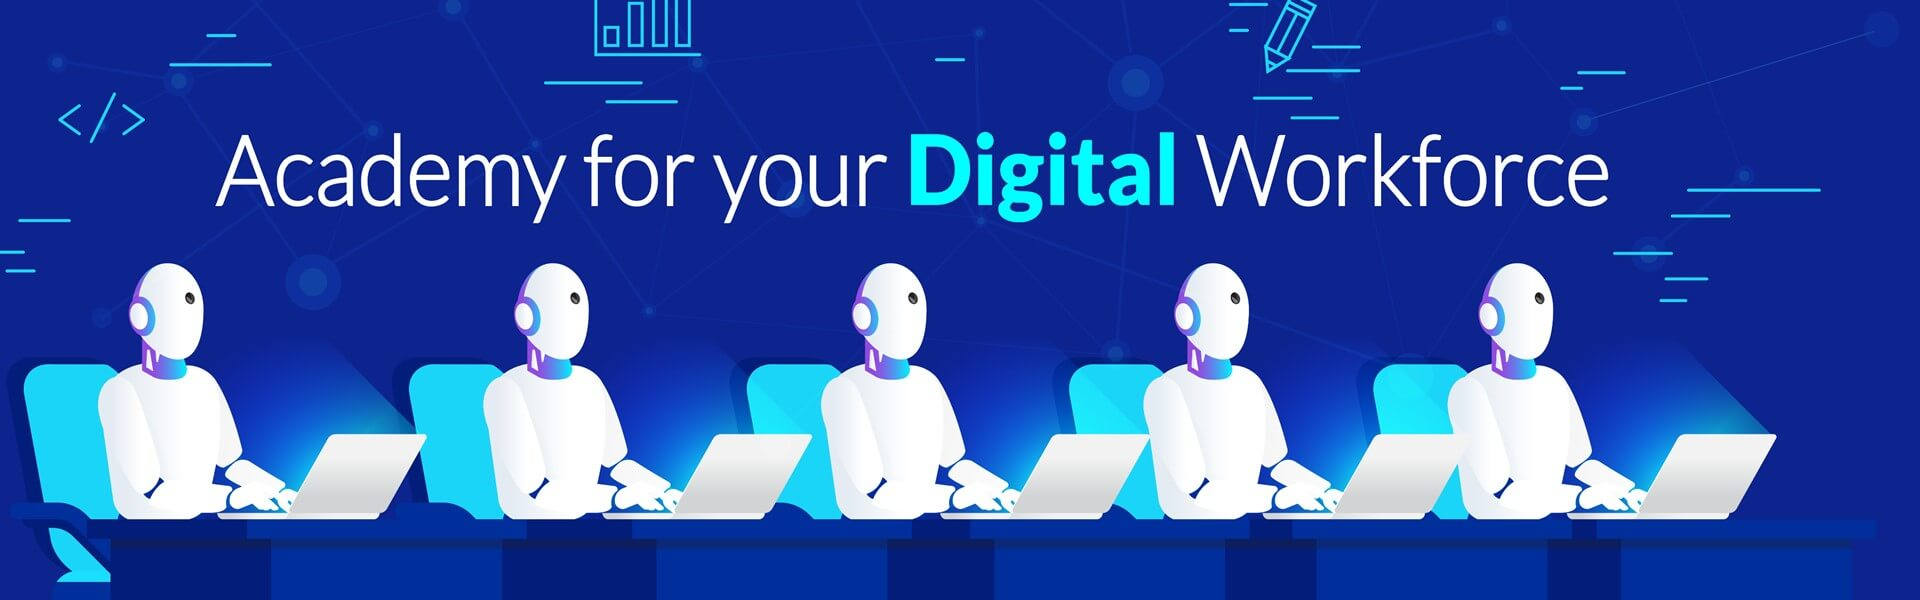 Academy for your Digital Workforce